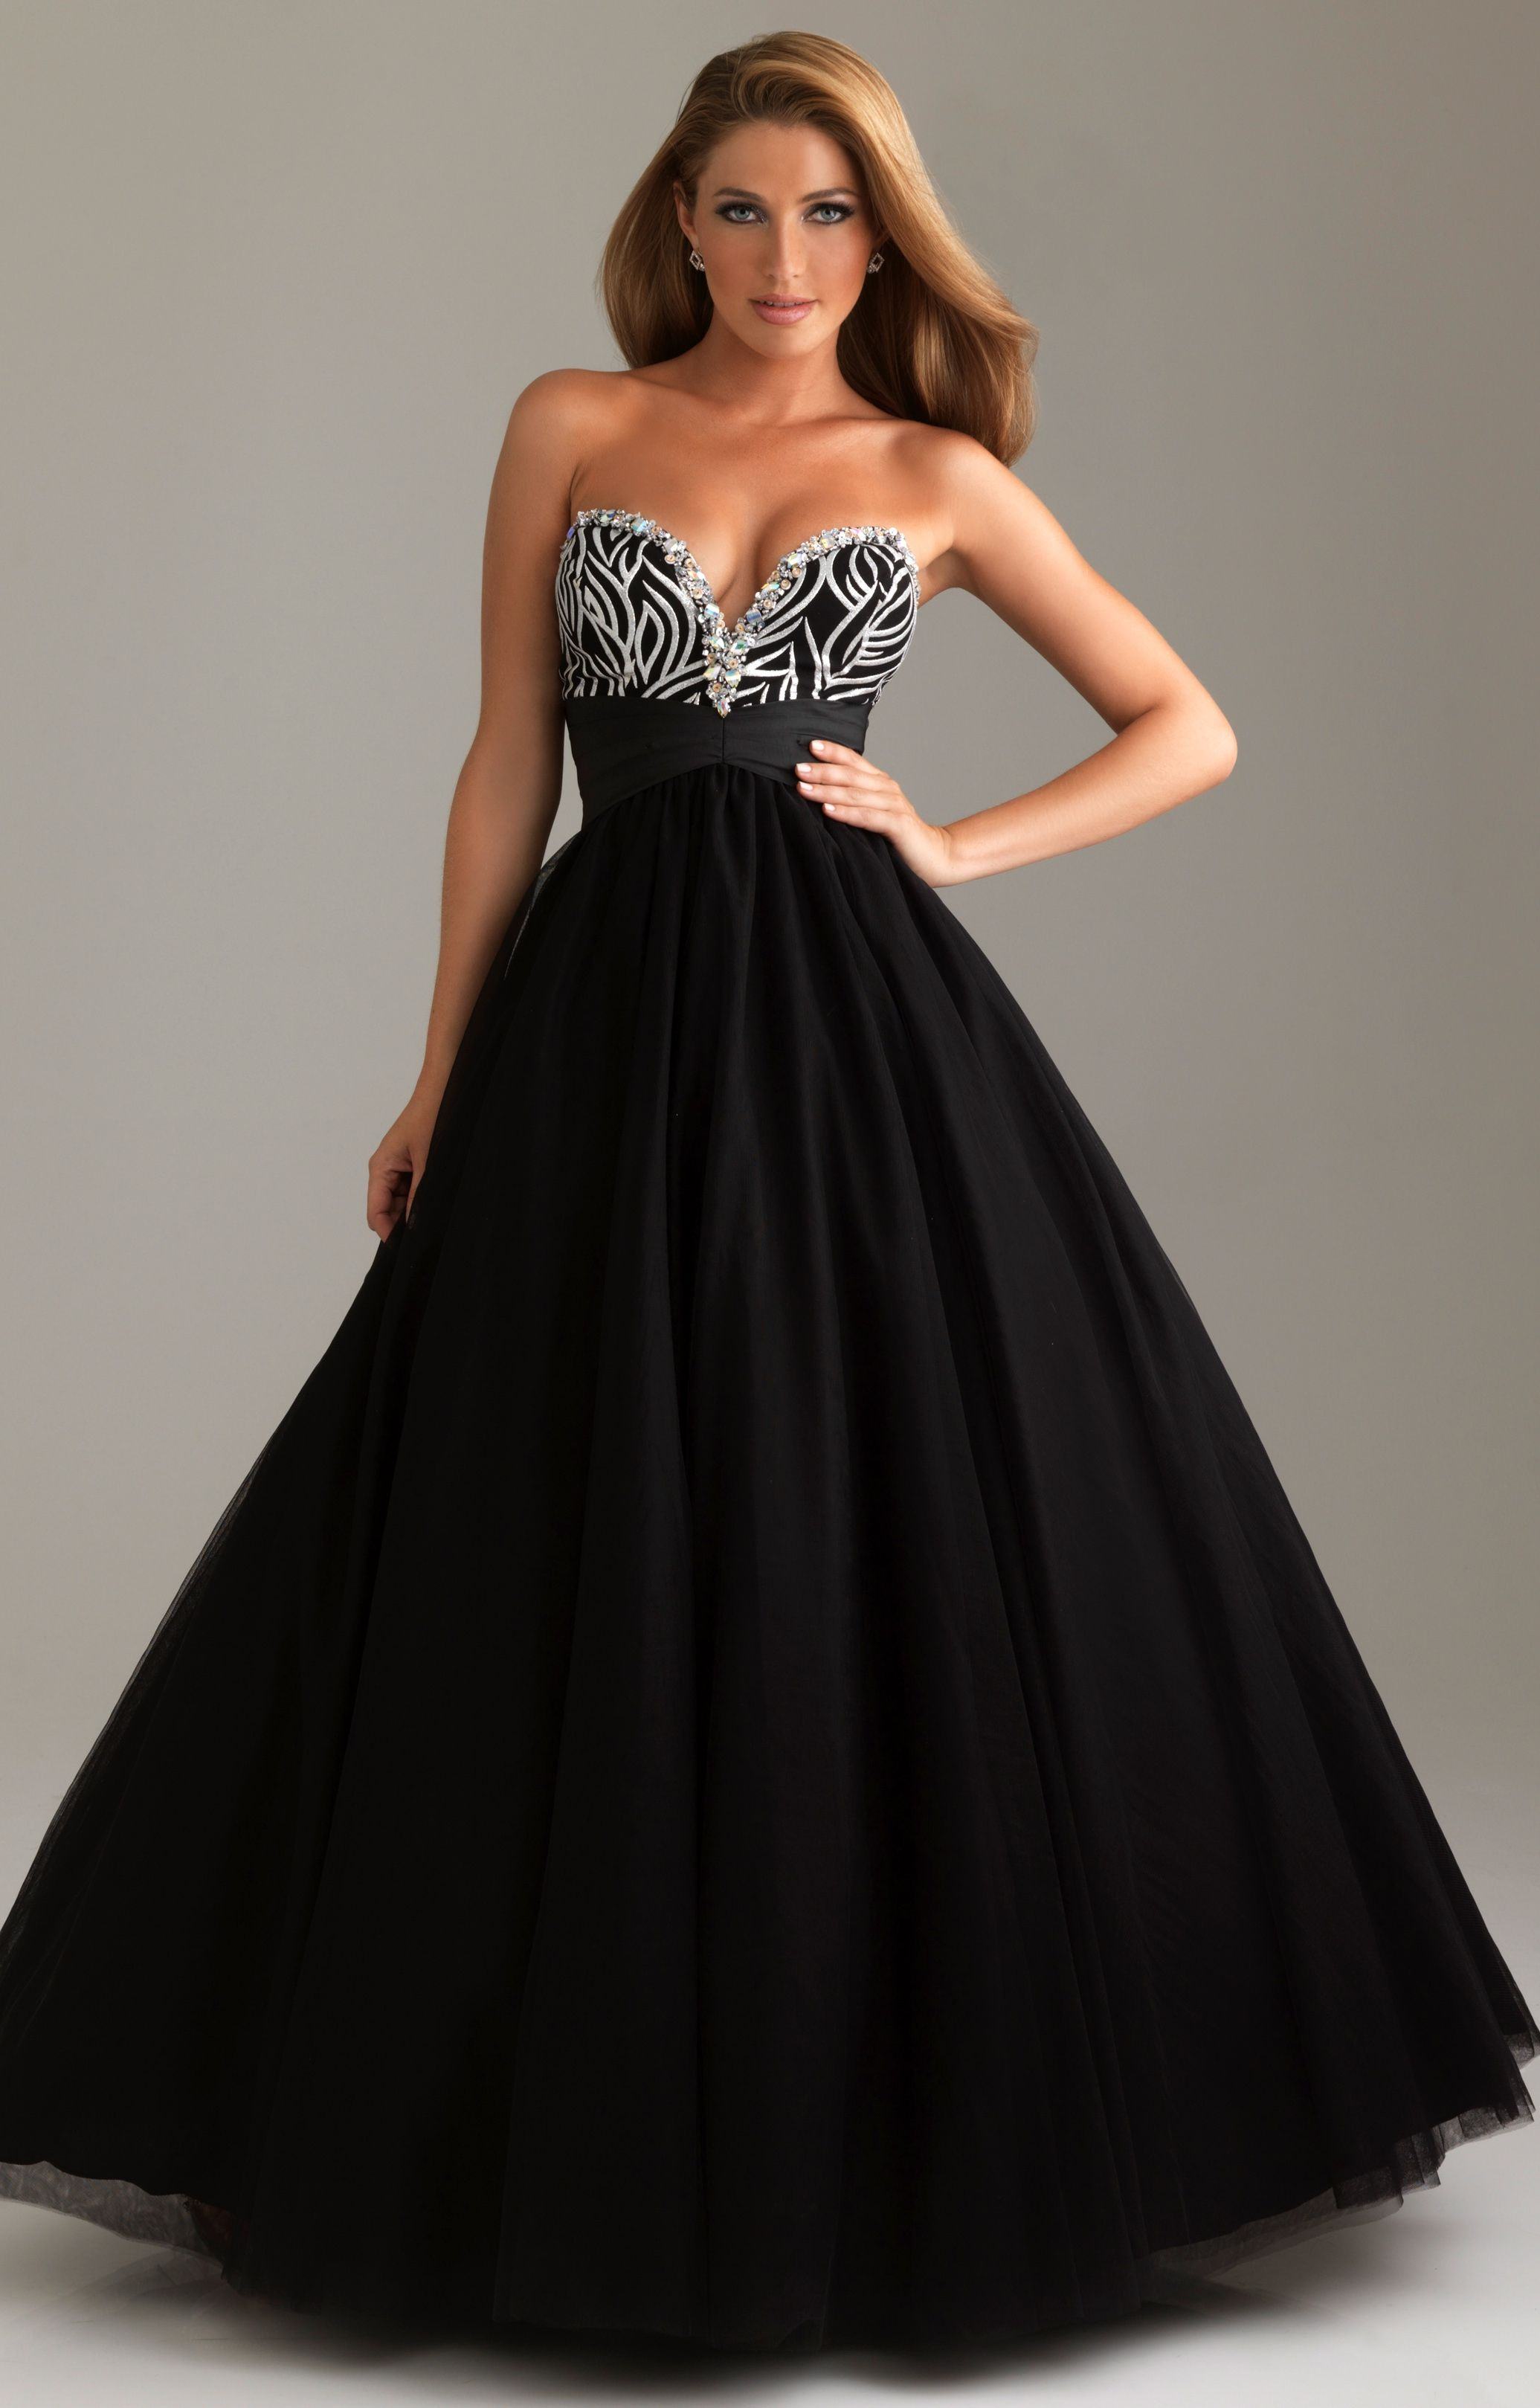 black ball gown | If I had the body... | Pinterest | Ball gowns ...